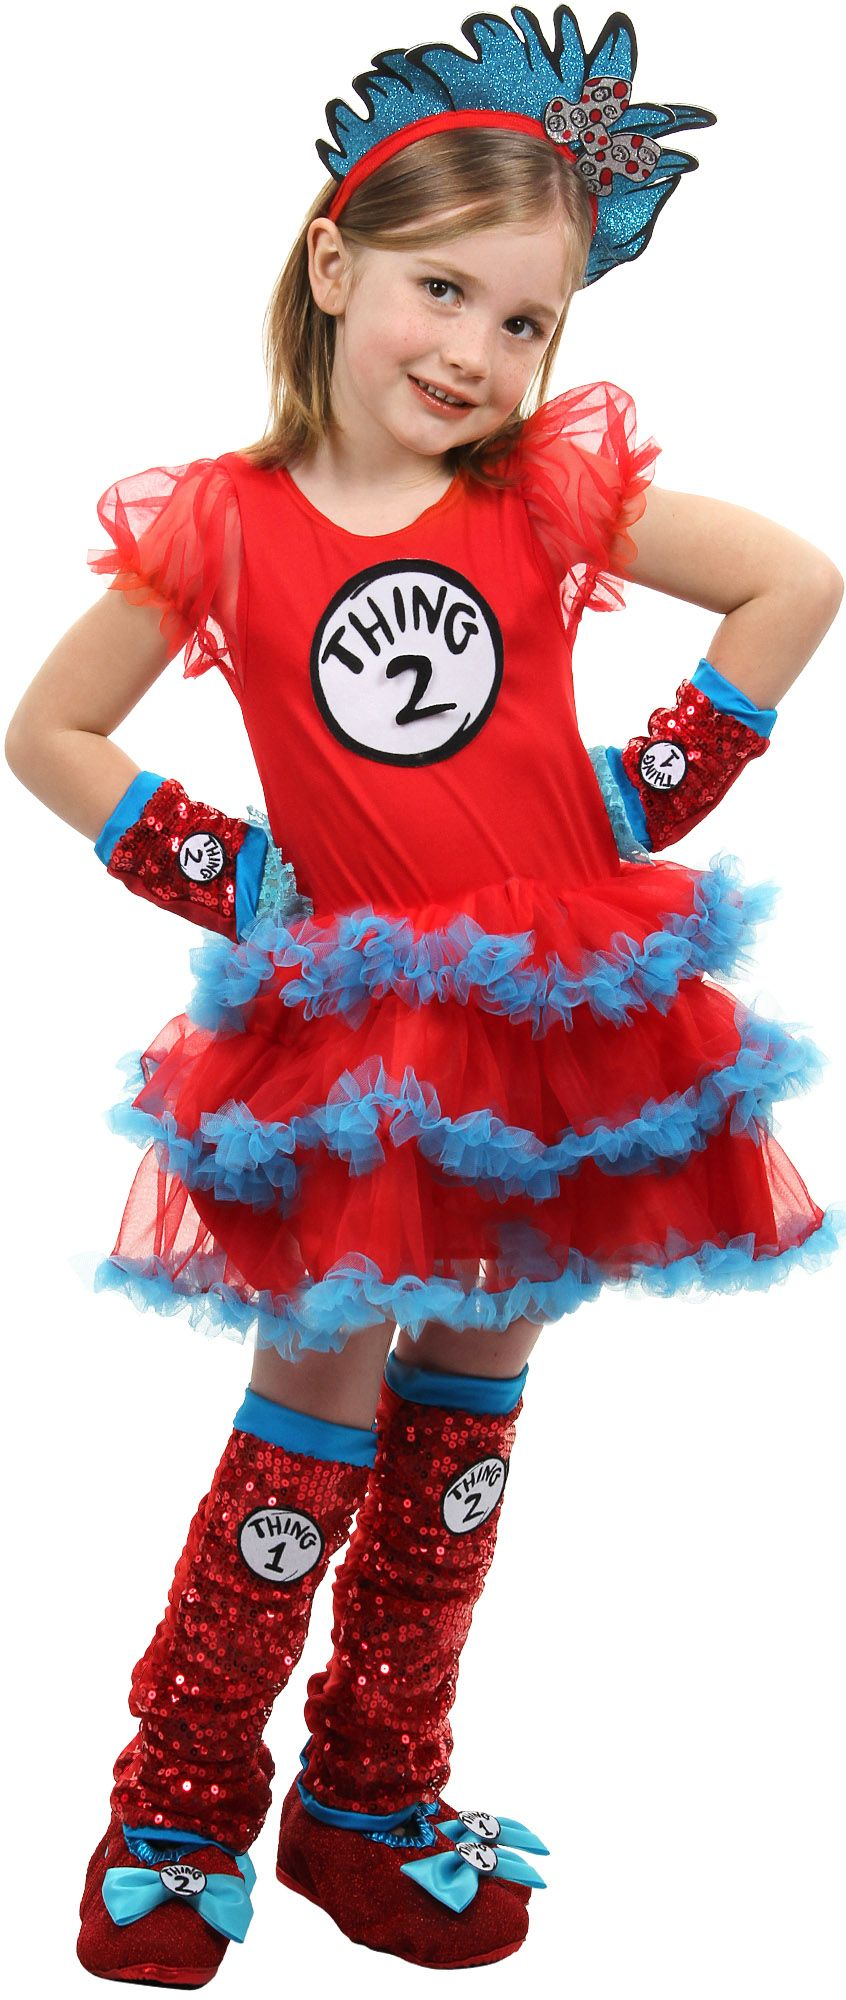 girl thing 1 and thing 2 create your look - Thing 1 Thing 2 Halloween Costume